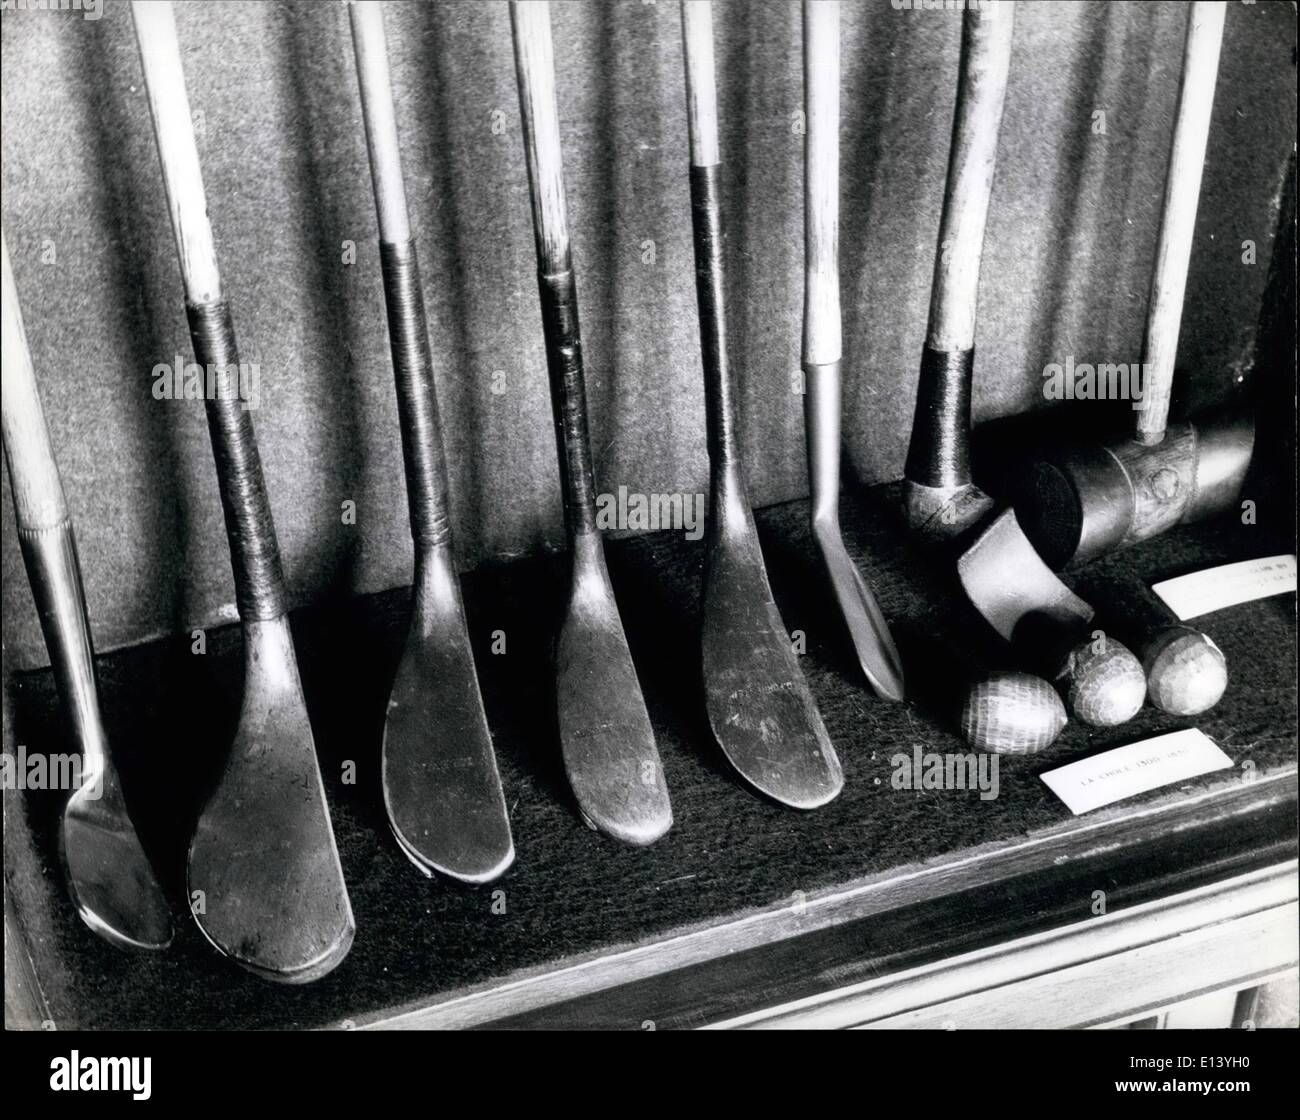 Mar. 27, 2012 - Famous Club: in the St. Andrews clubhouse are these fine specimens of clubs by the famous. on the right are a Jeu De Mal (1717) and la Chole. (1300-1830) - Stock Image